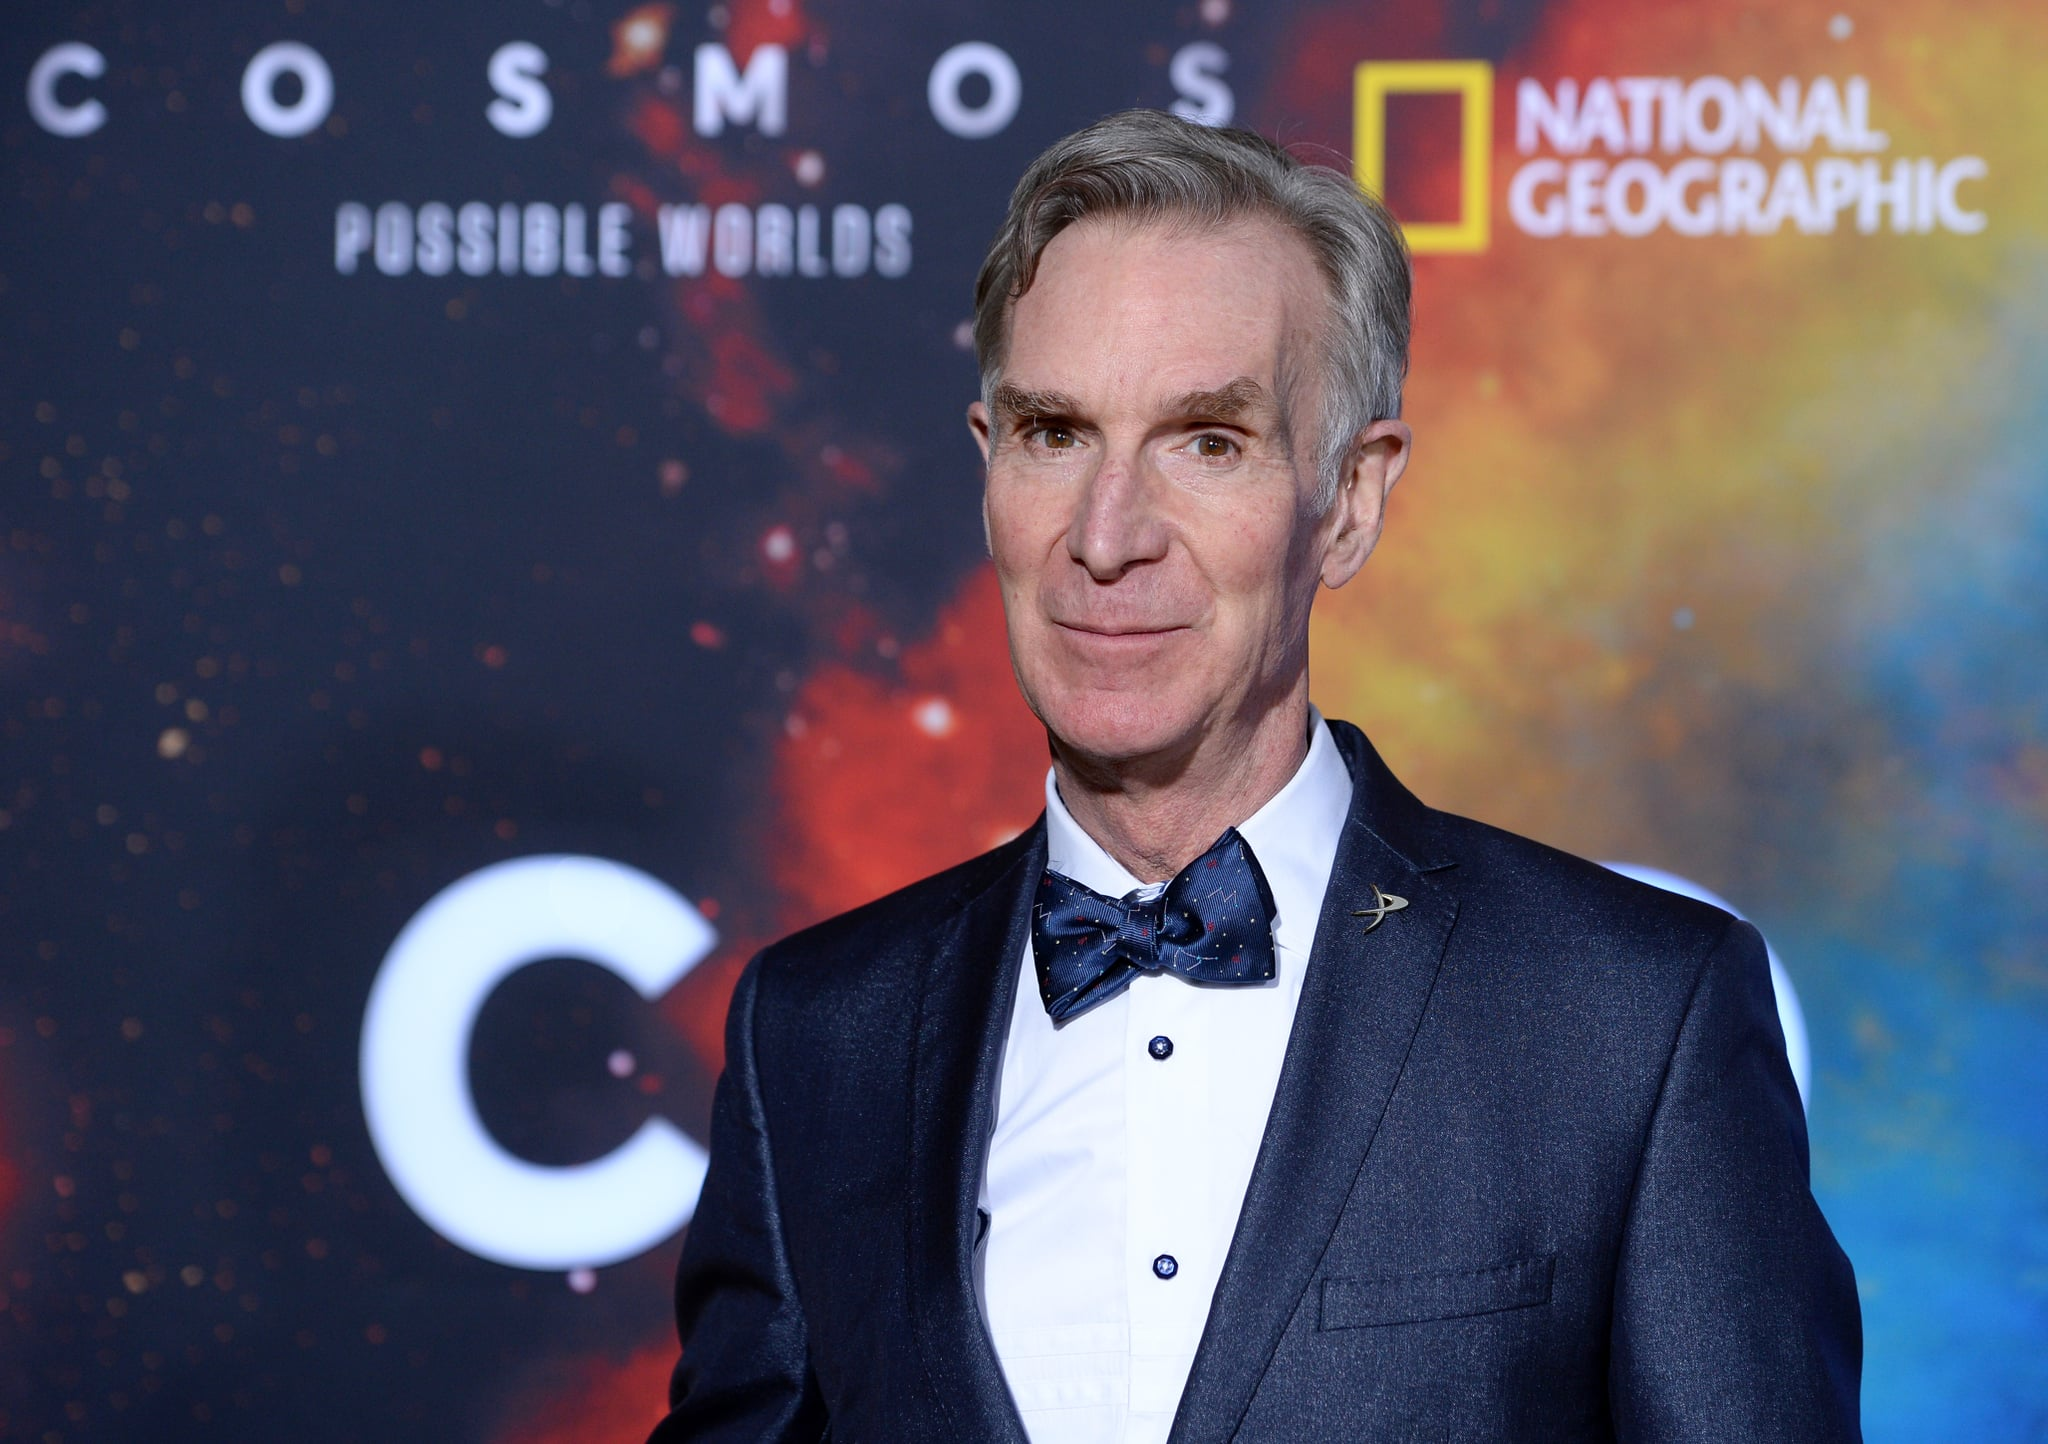 WESTWOOD, CALIFORNIA - FEBRUARY 26: Science communicator Bill Nye arrives at National Geographic's